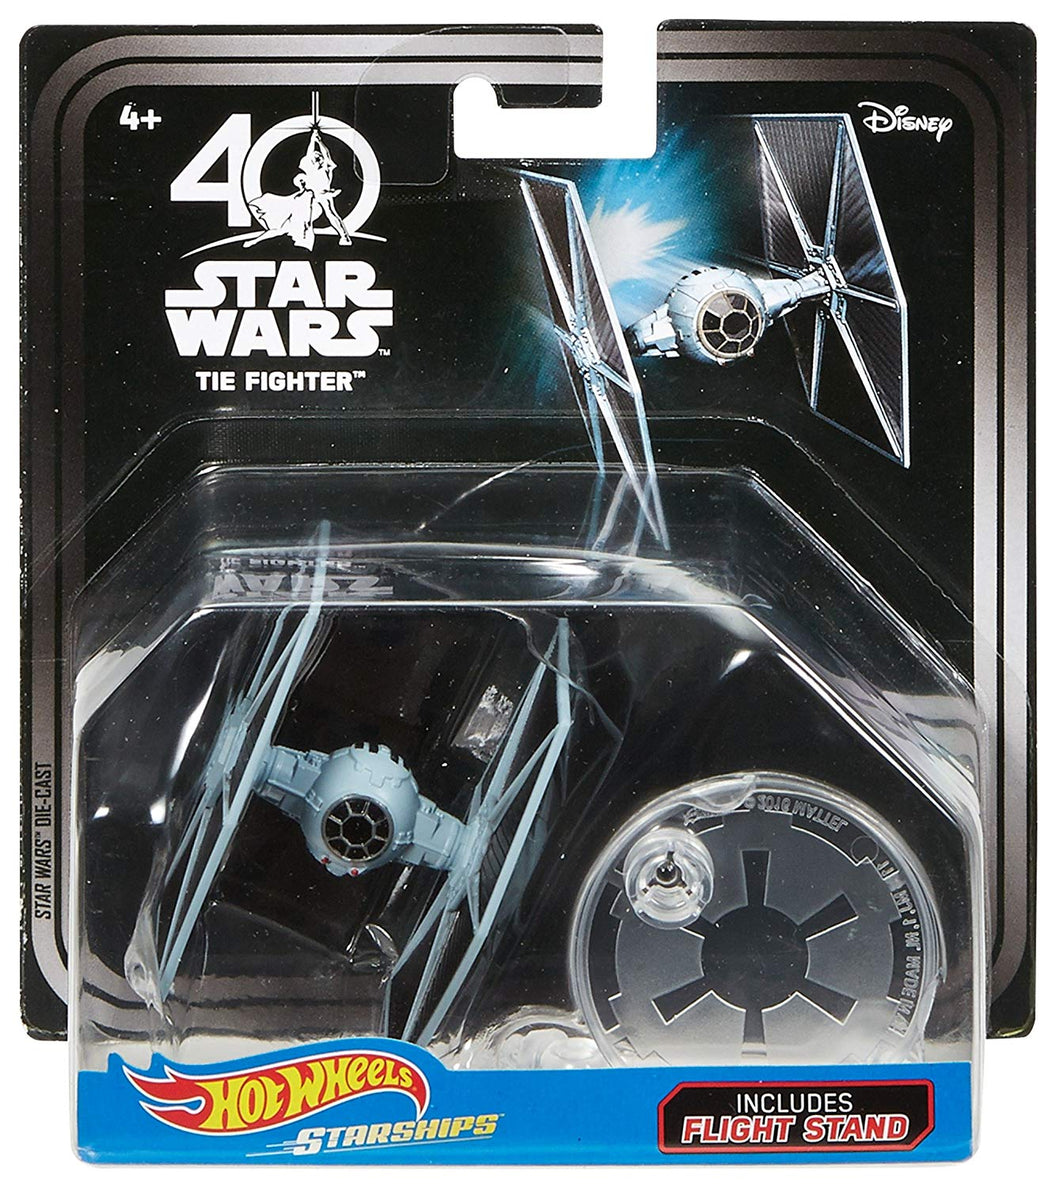 HW Tie Fighter Starships 40th Anniversary